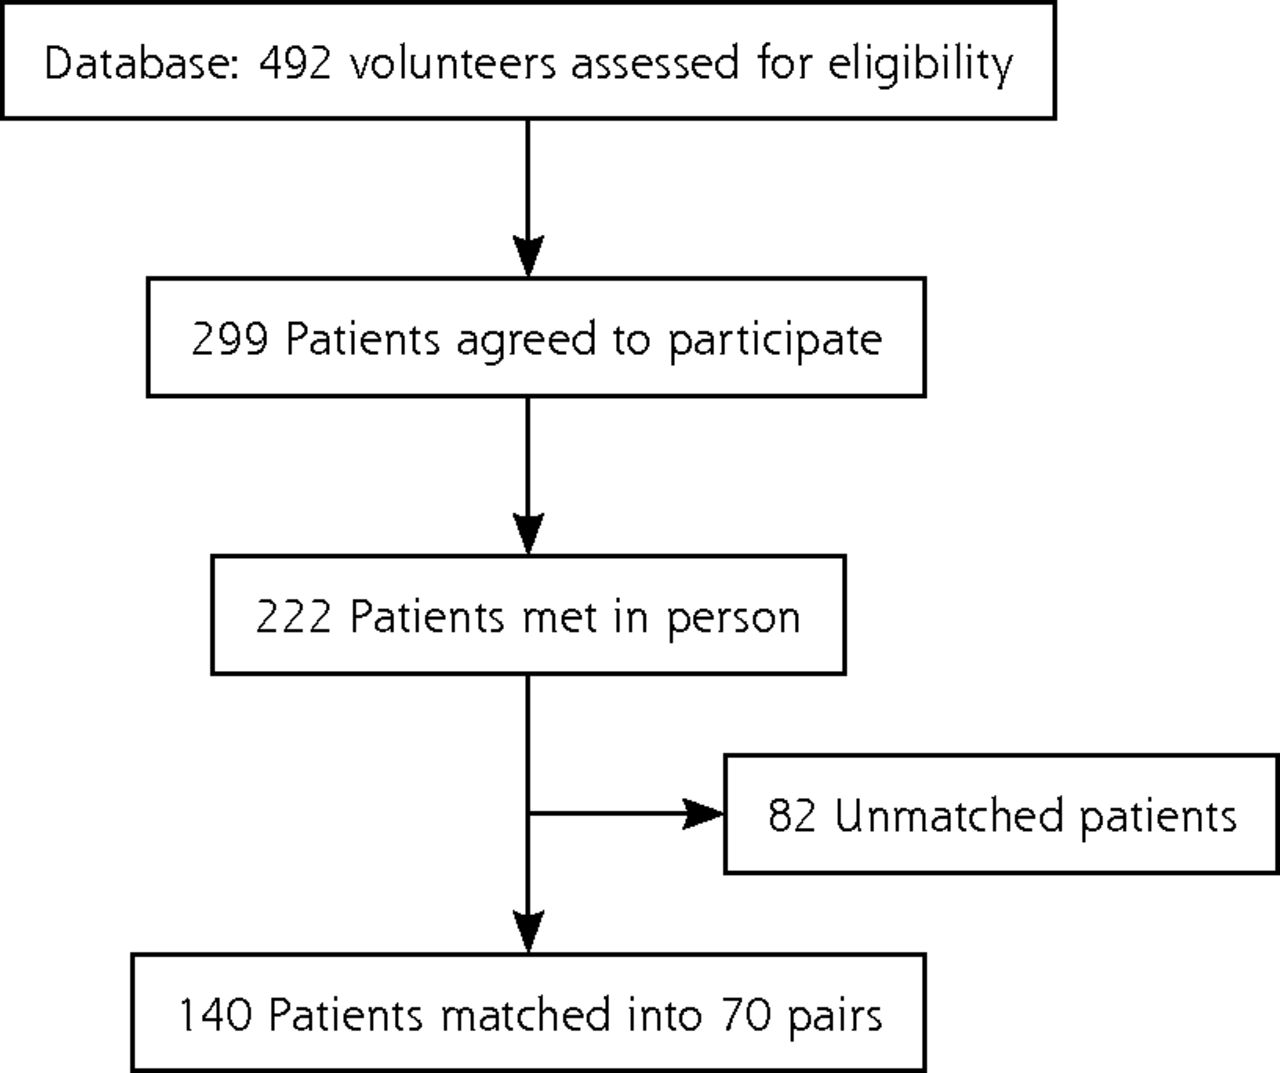 hight resolution of association between alcohol consumption and nocturnal leg cramps in patients over 60 years old a case control study